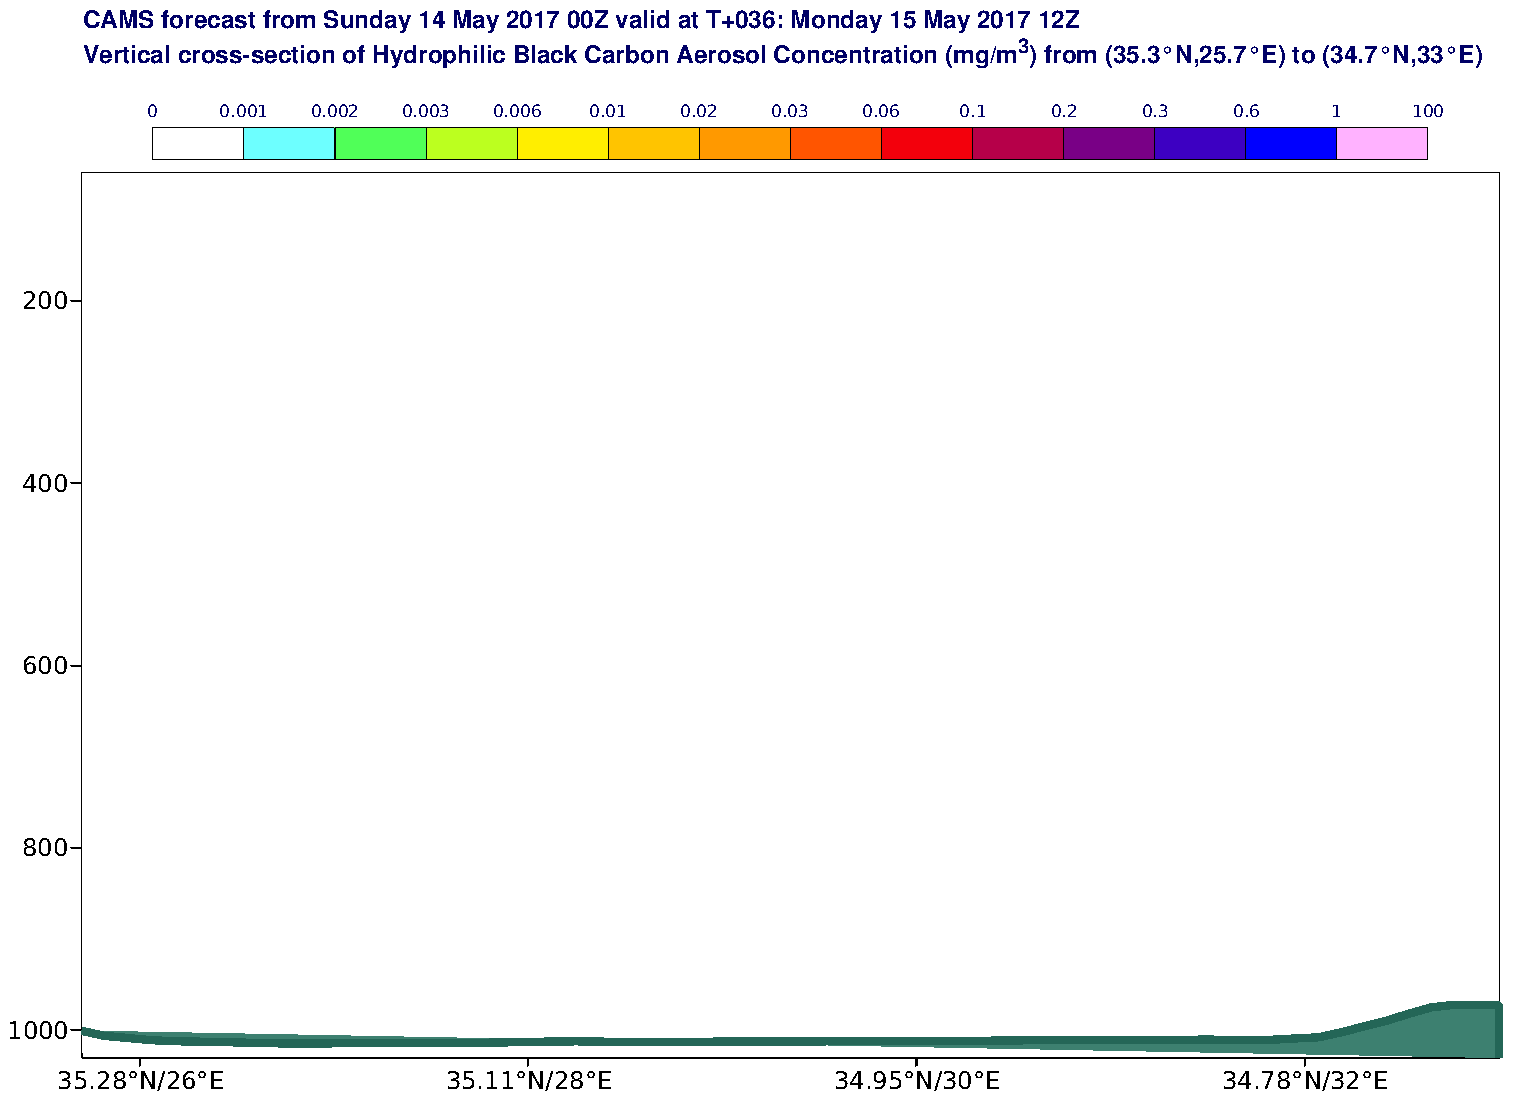 Vertical cross-section of Hydrophilic Black Carbon Aerosol Concentration (mg/m3) valid at T36 - 2017-05-15 12:00